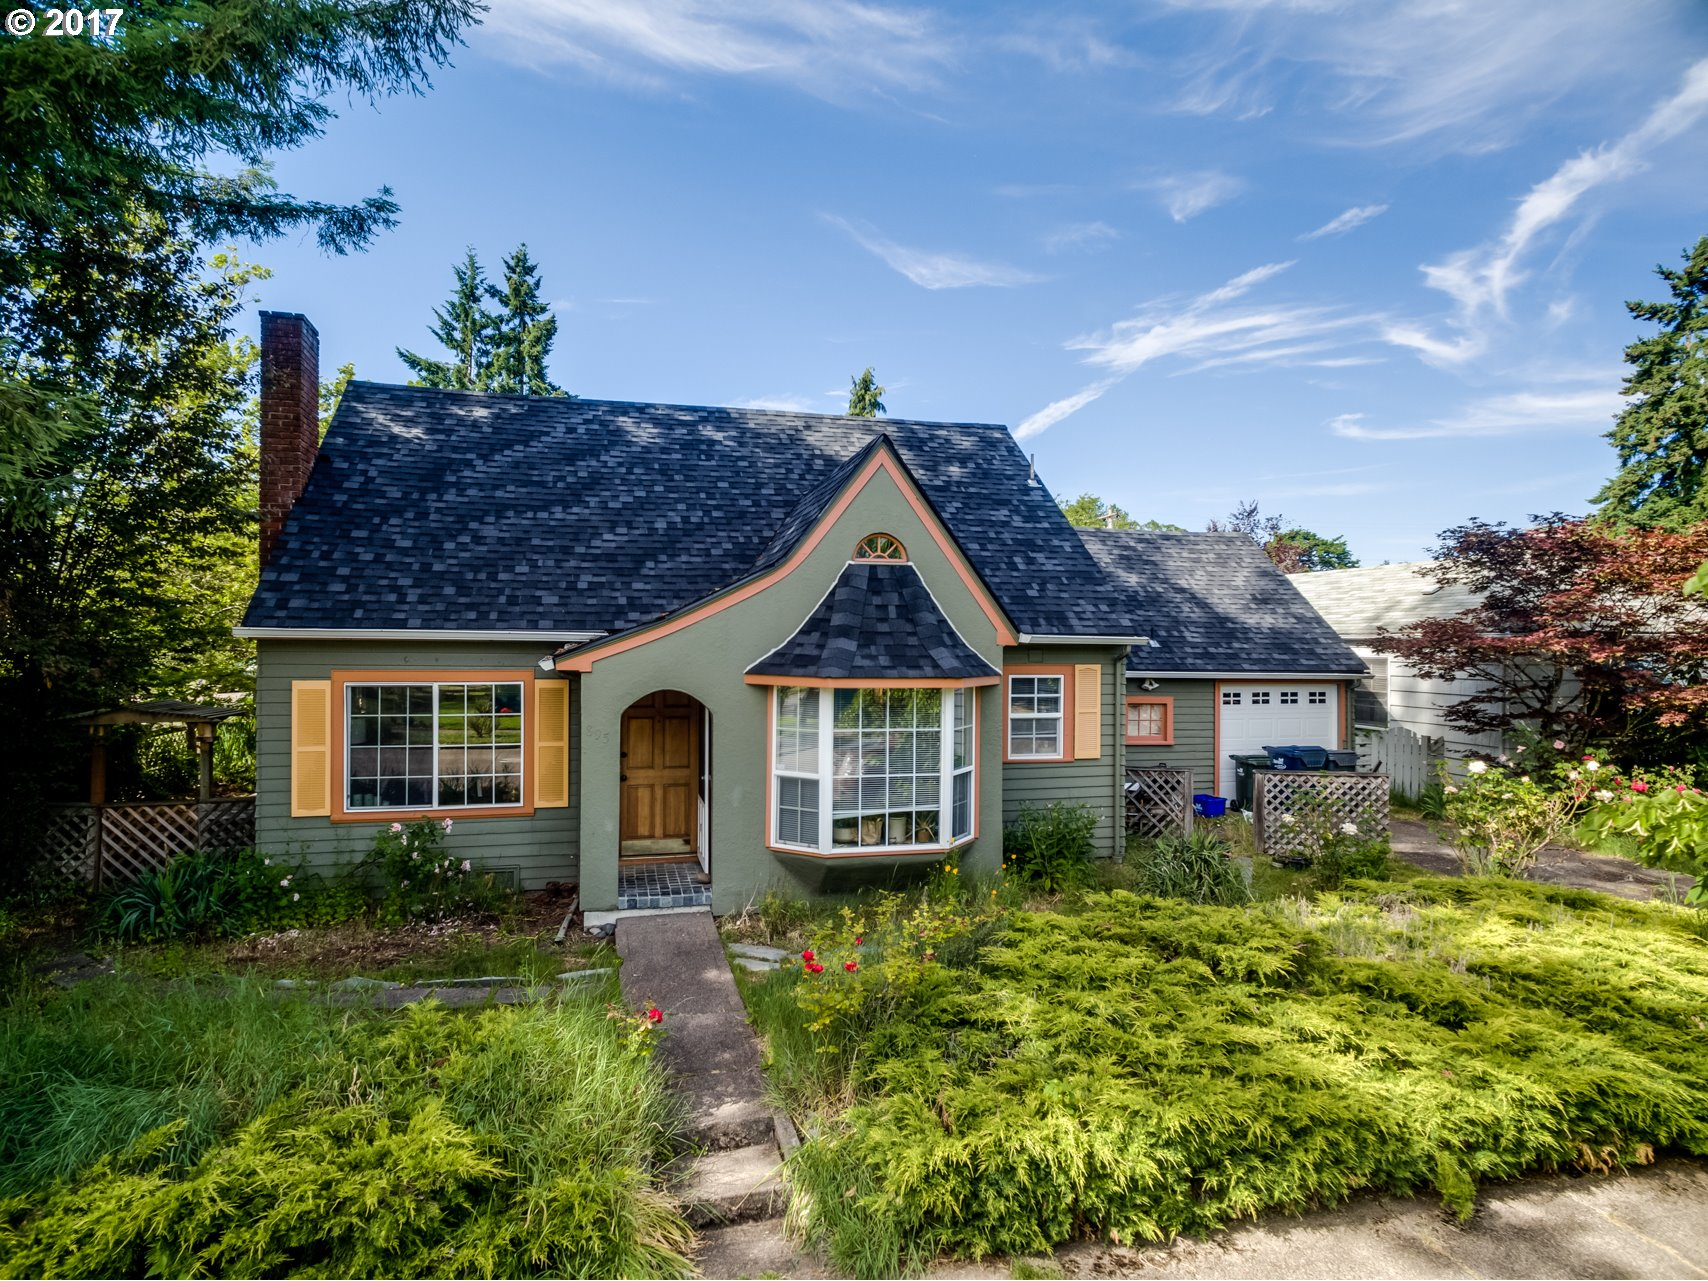 895 W 12TH AVE, Eugene, OR 97402